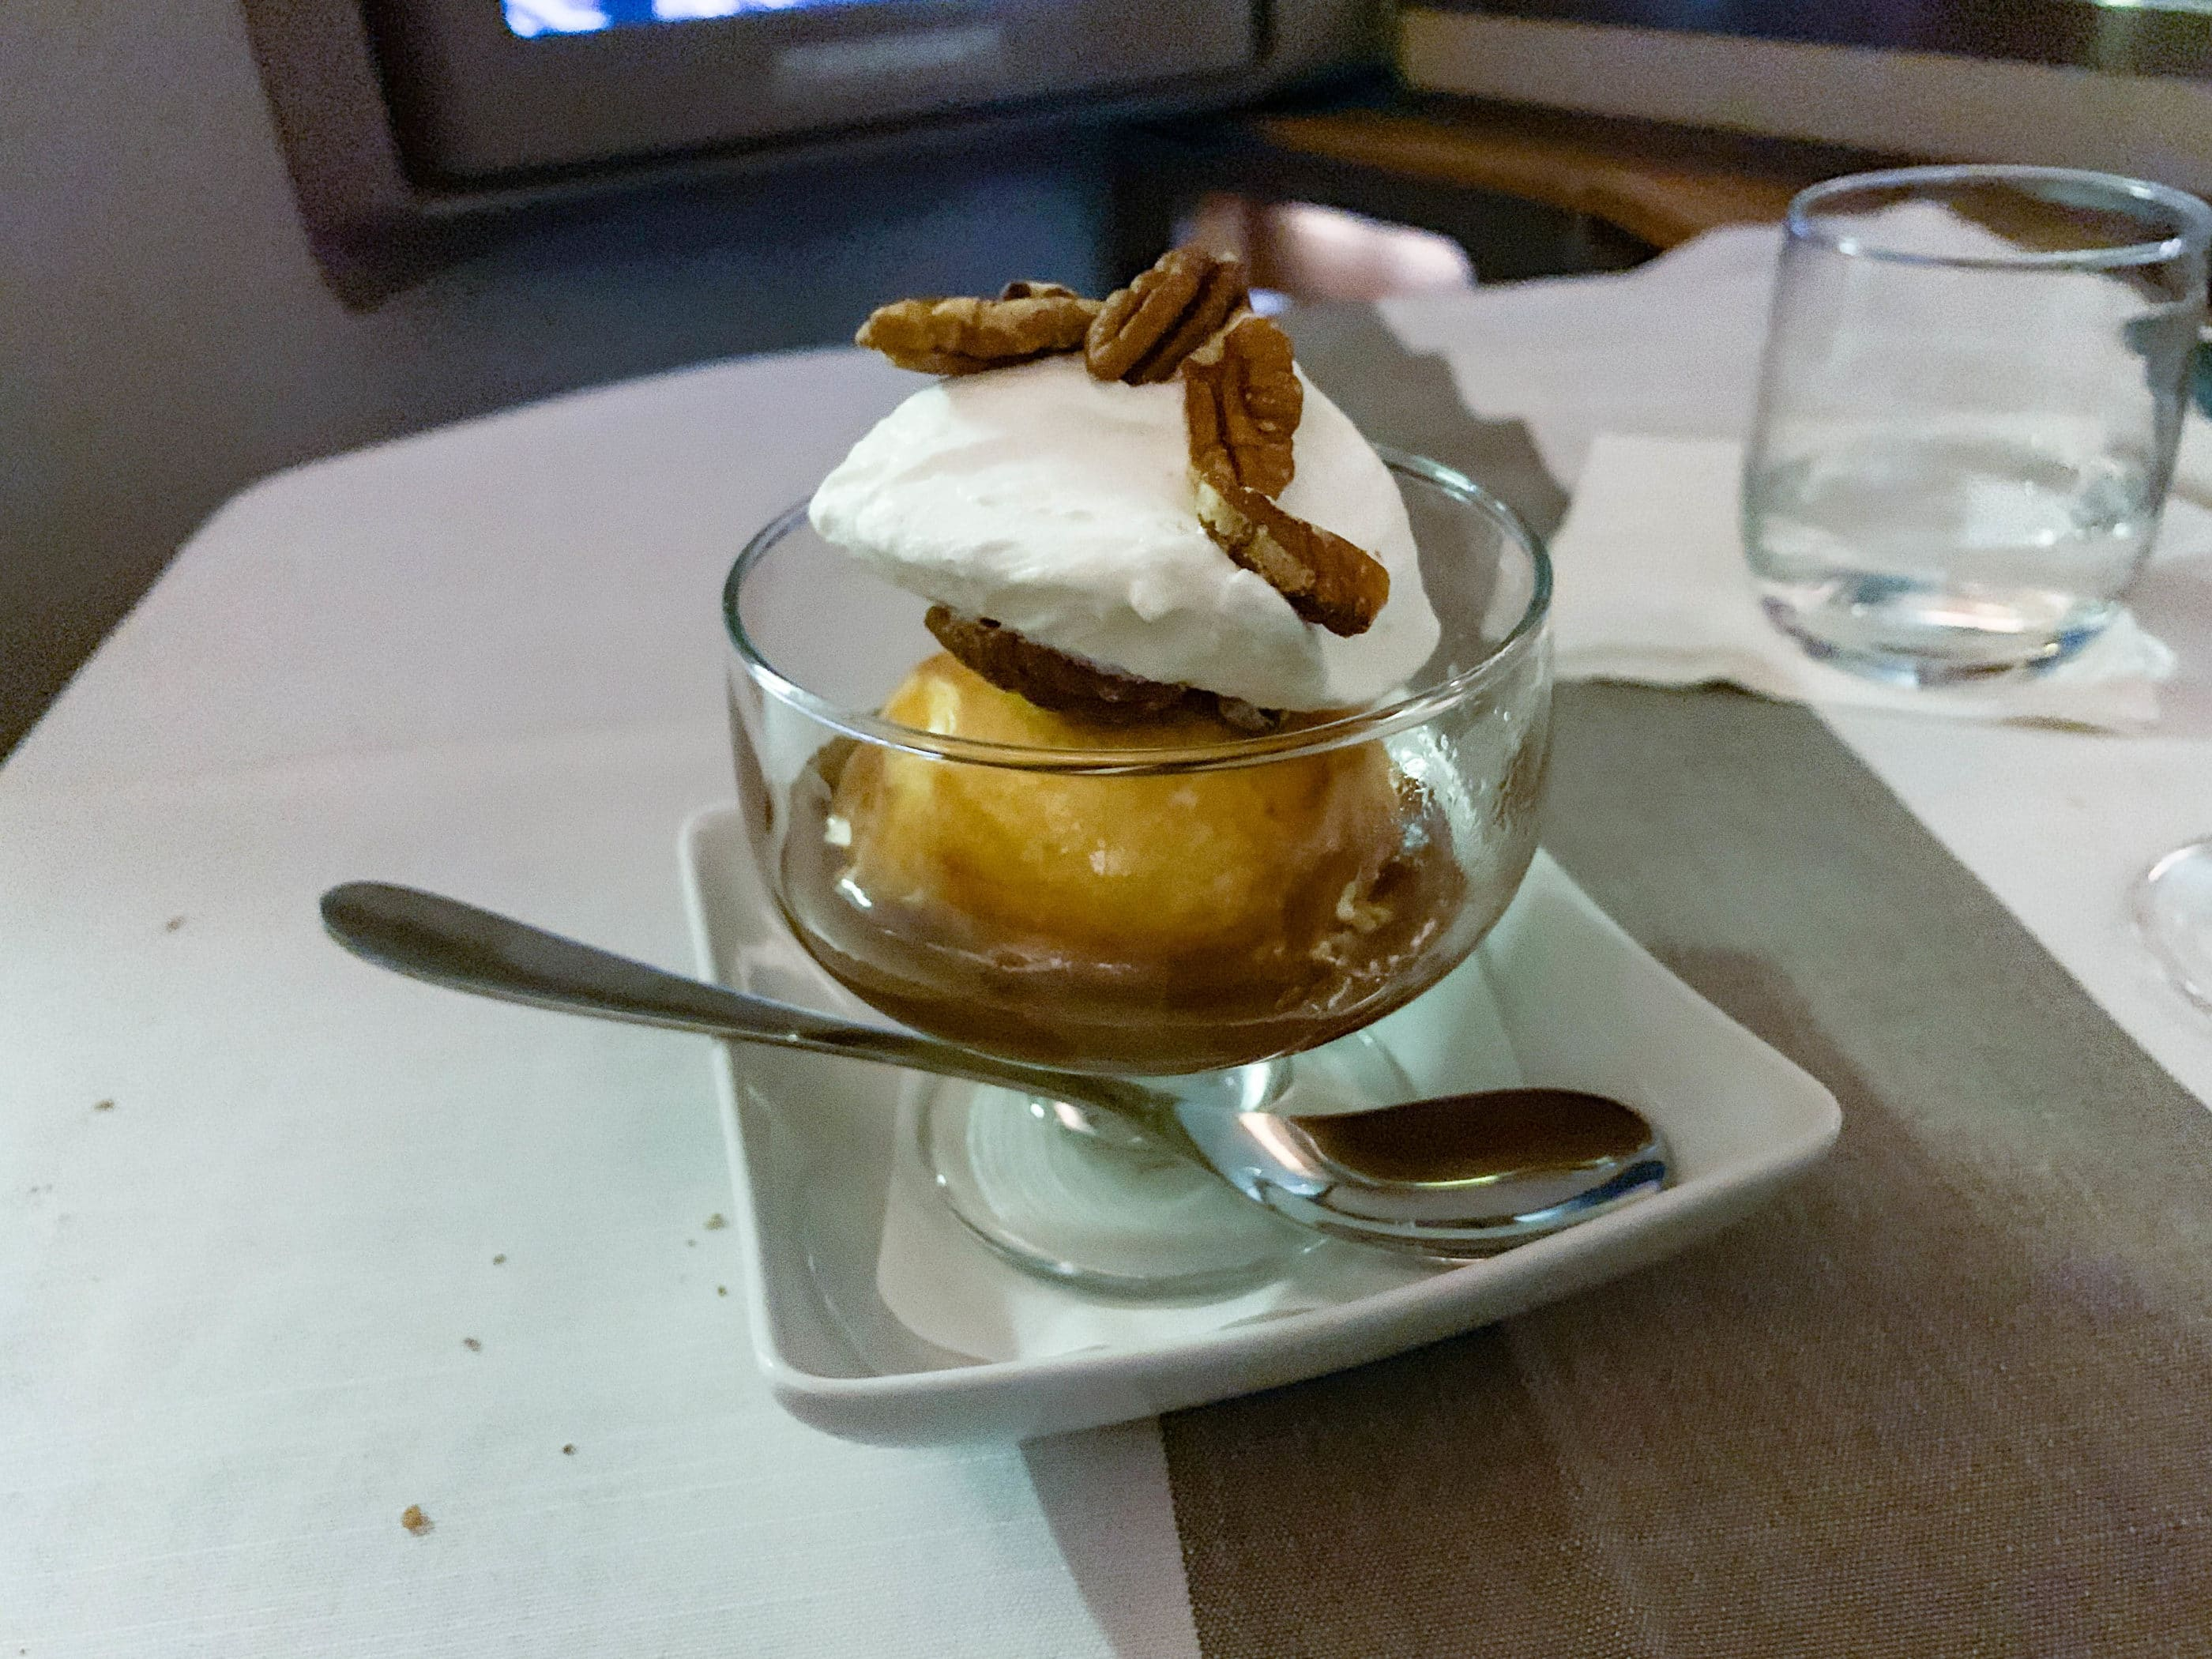 Ice cream sundae on American Airlines flight 182 from HKG-LAX in first class